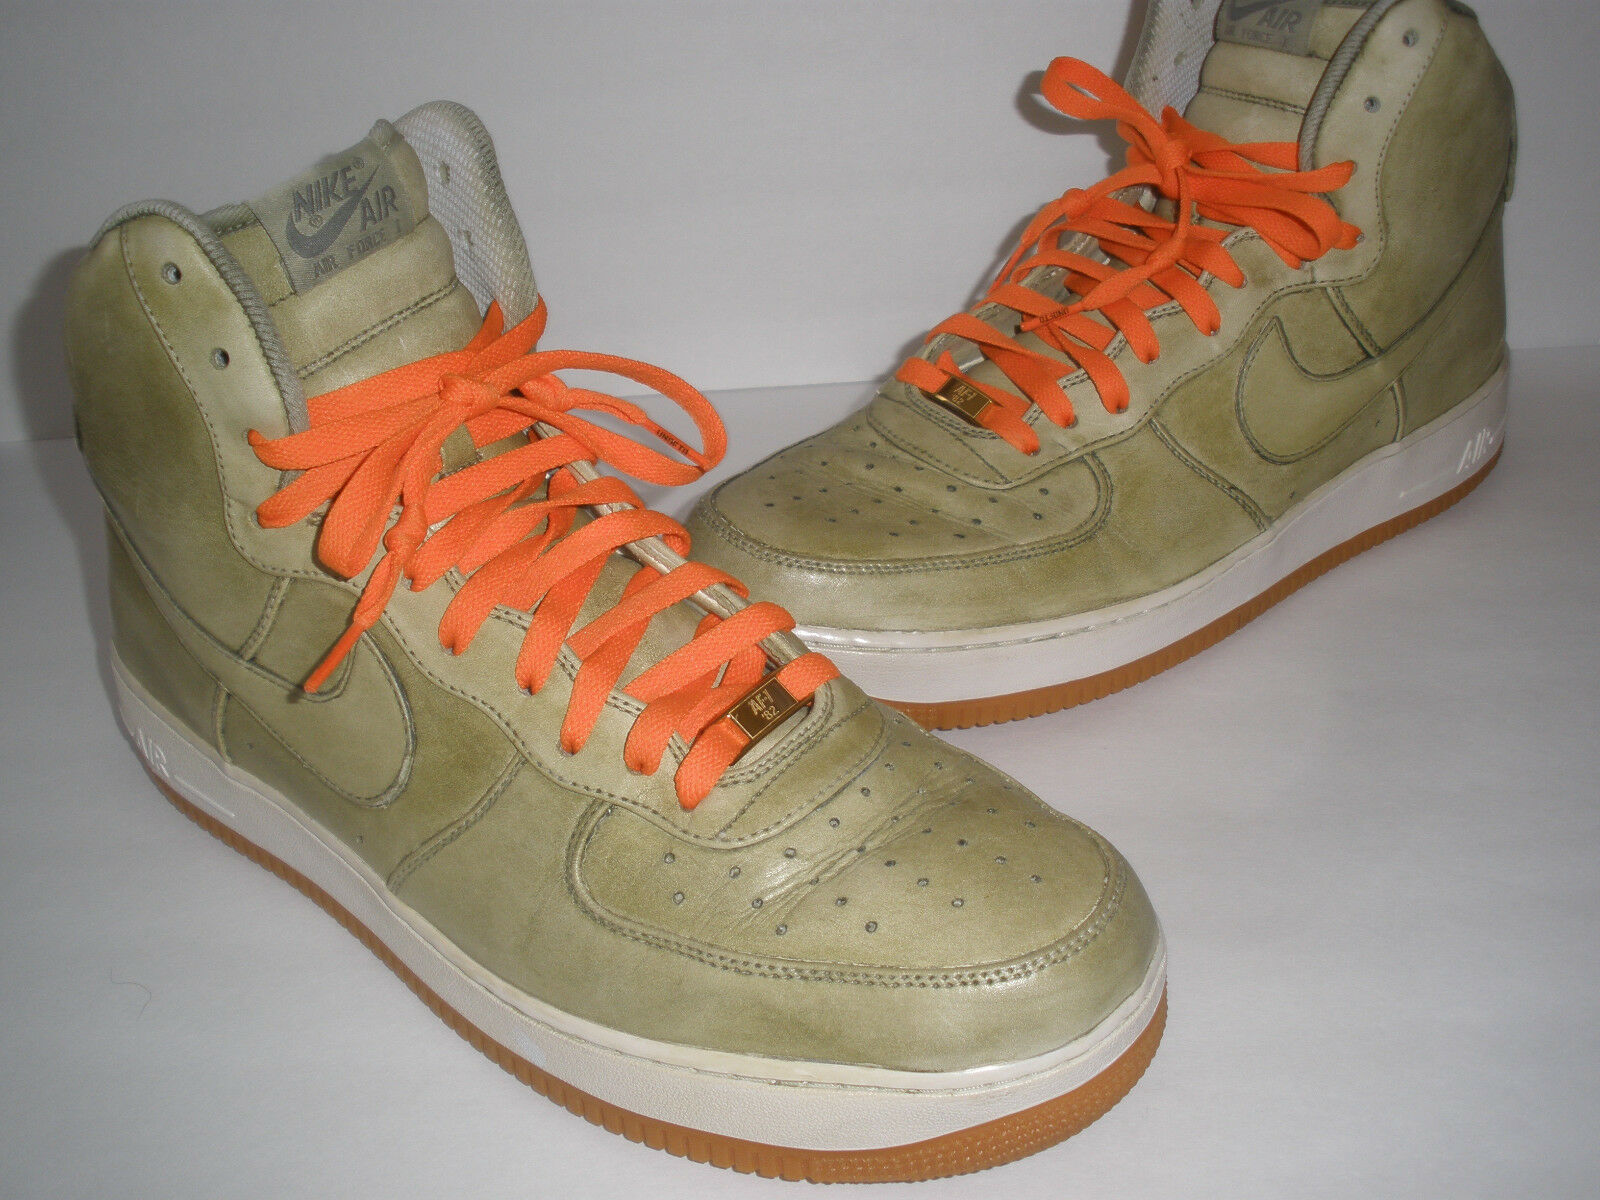 NIKE AIR FORCE 1 GREEN LEATHER SIZE US 14 RARE ONLY 1 ON EBAY